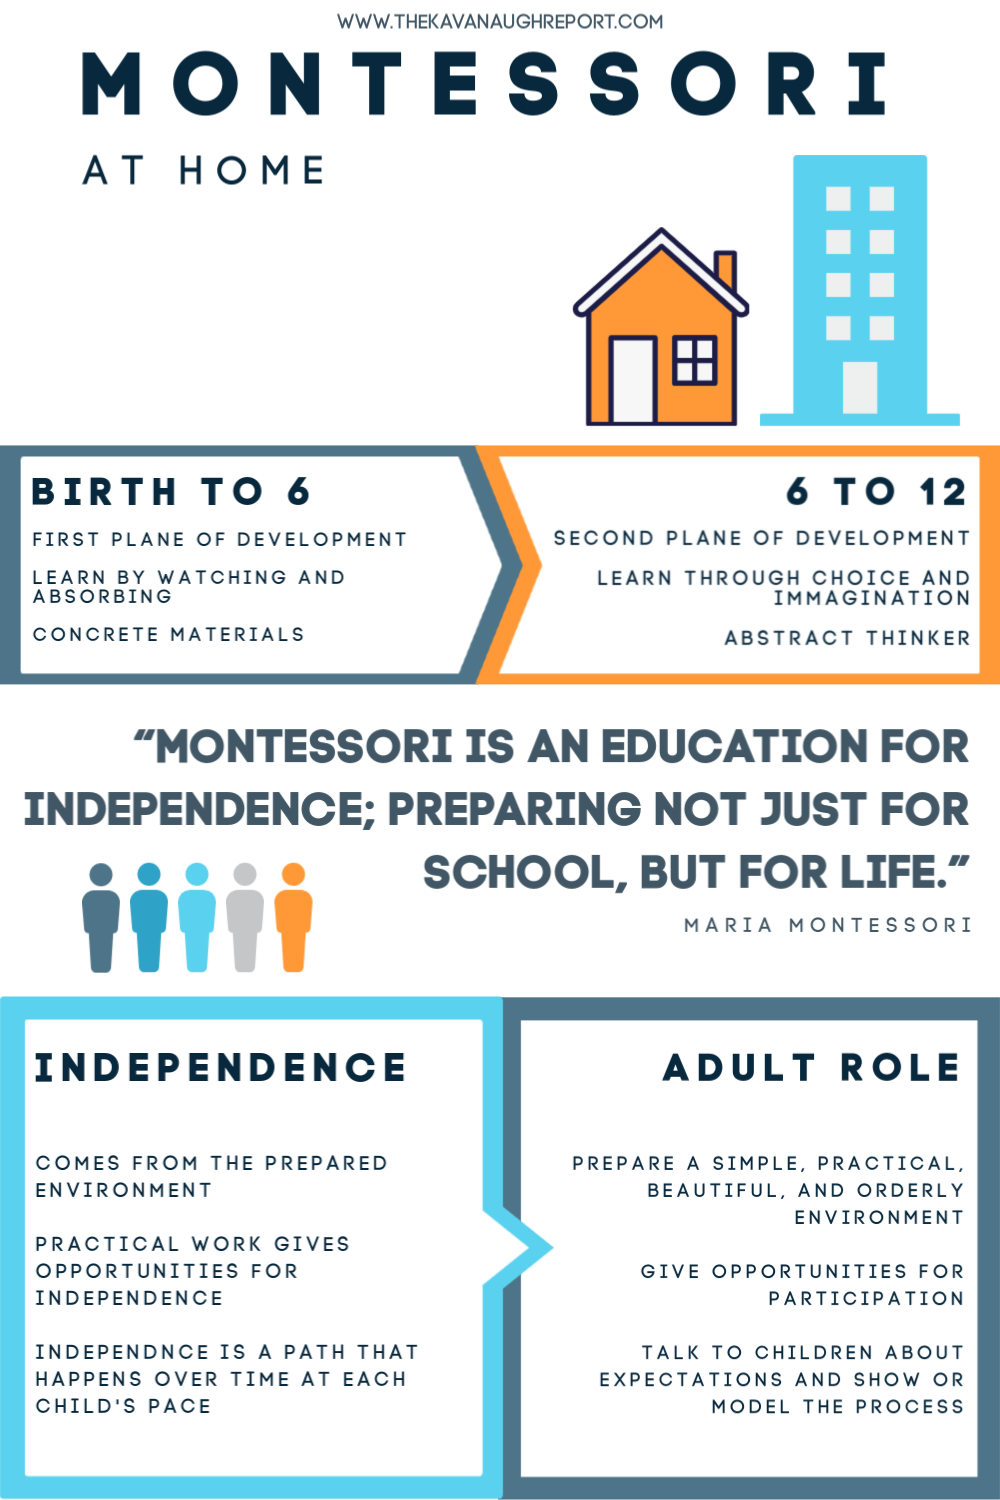 This Montessori parenting infographic is helpful for getting started with Montessori at home.